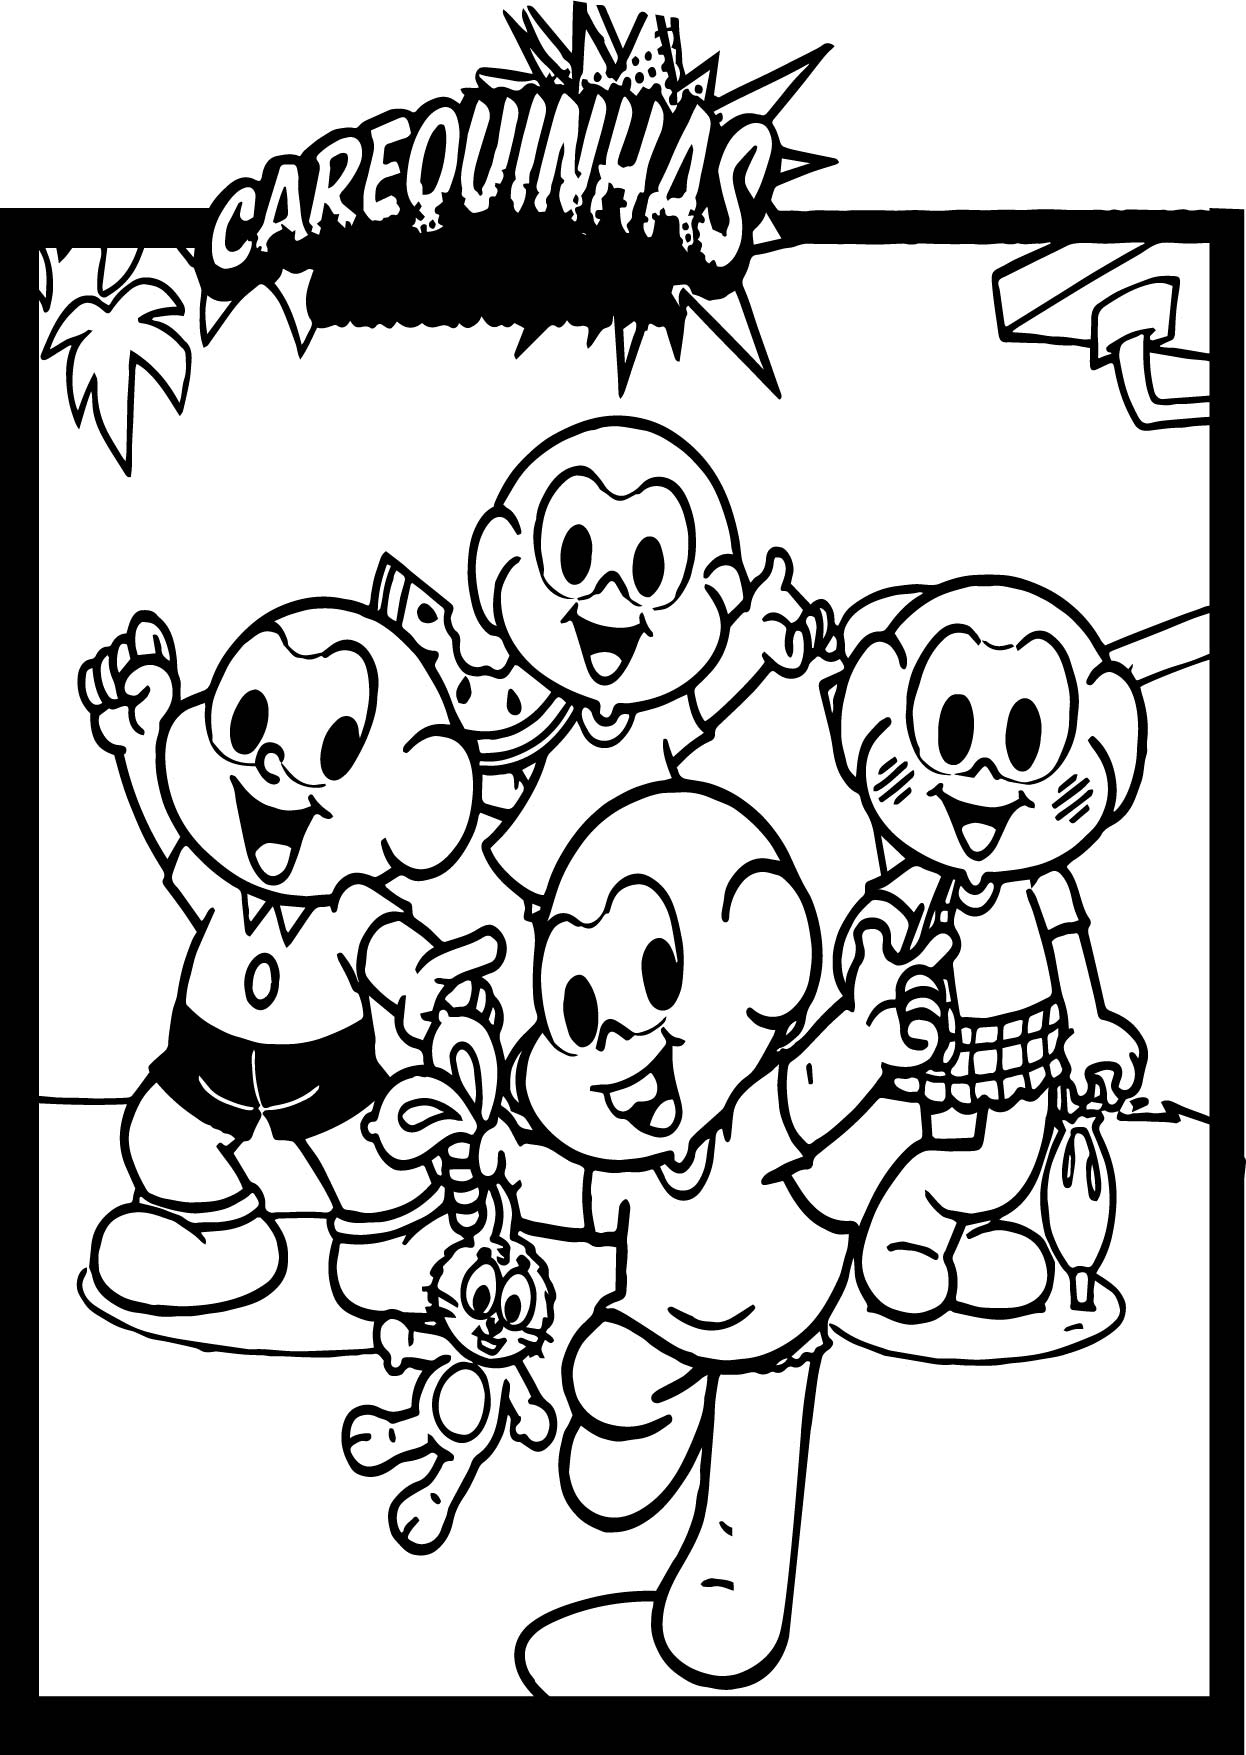 Post Graacc Turma Monica Carequinhas Coloring Page